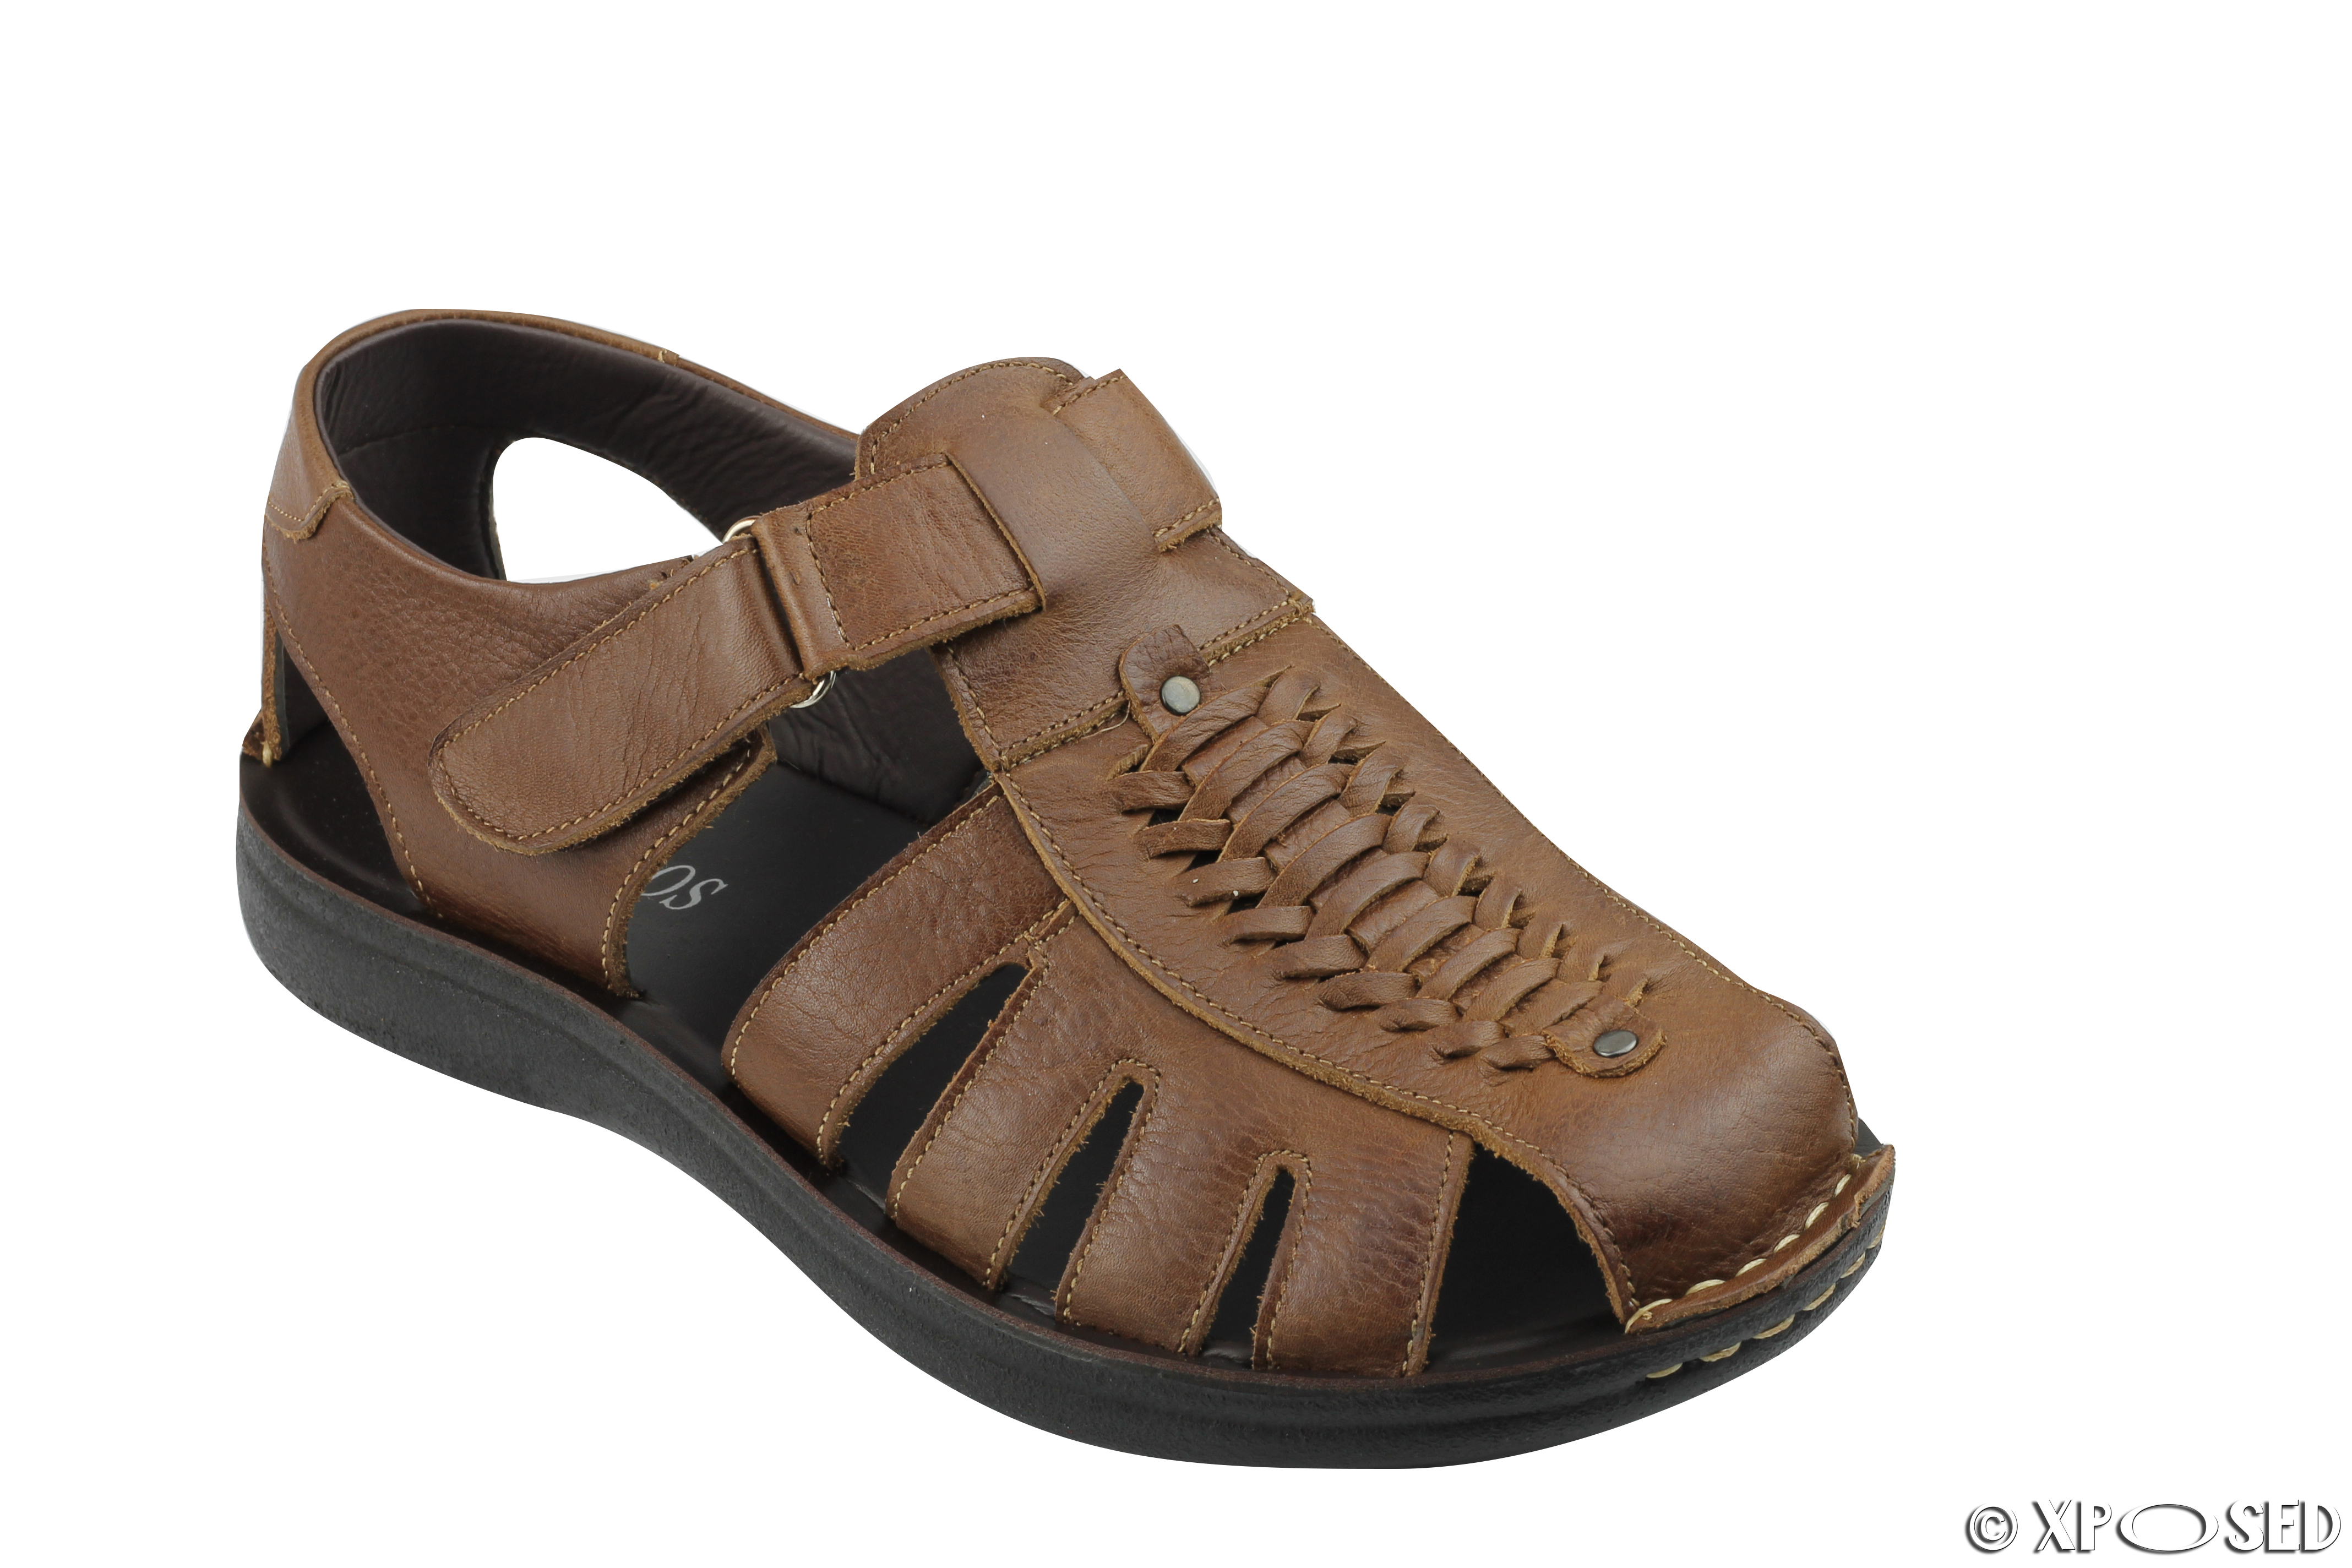 bed667c6d26602 Details about New Mens Leather Strap Fasten Beach Summer Holiday Walking Sandals  Shoes UK Size